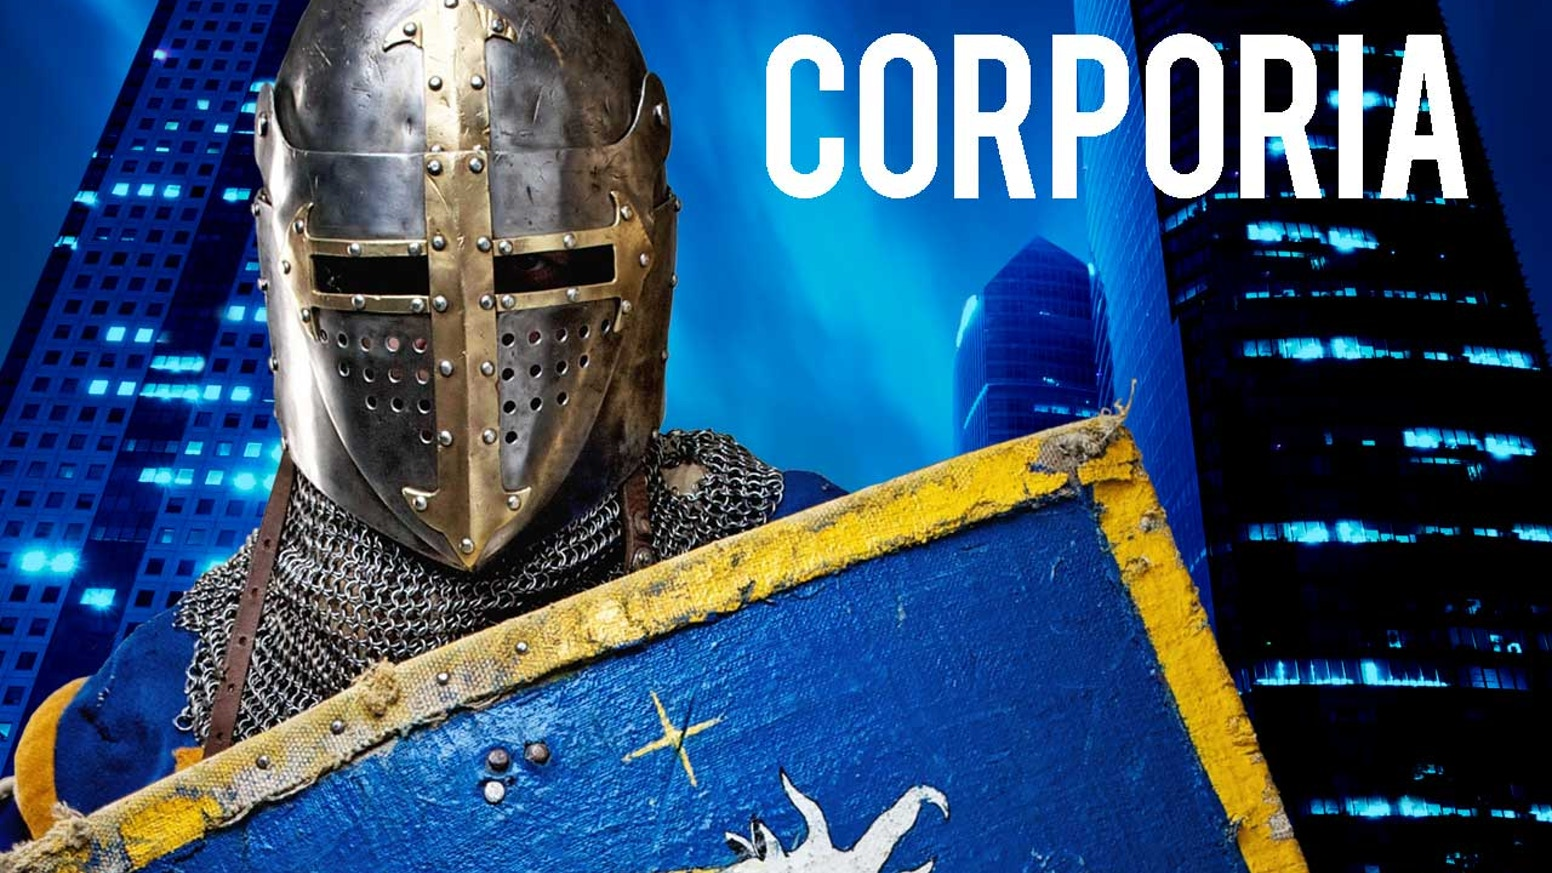 CORPORIA - the RPG where Camelot meets corporate! by Mark Plemmons